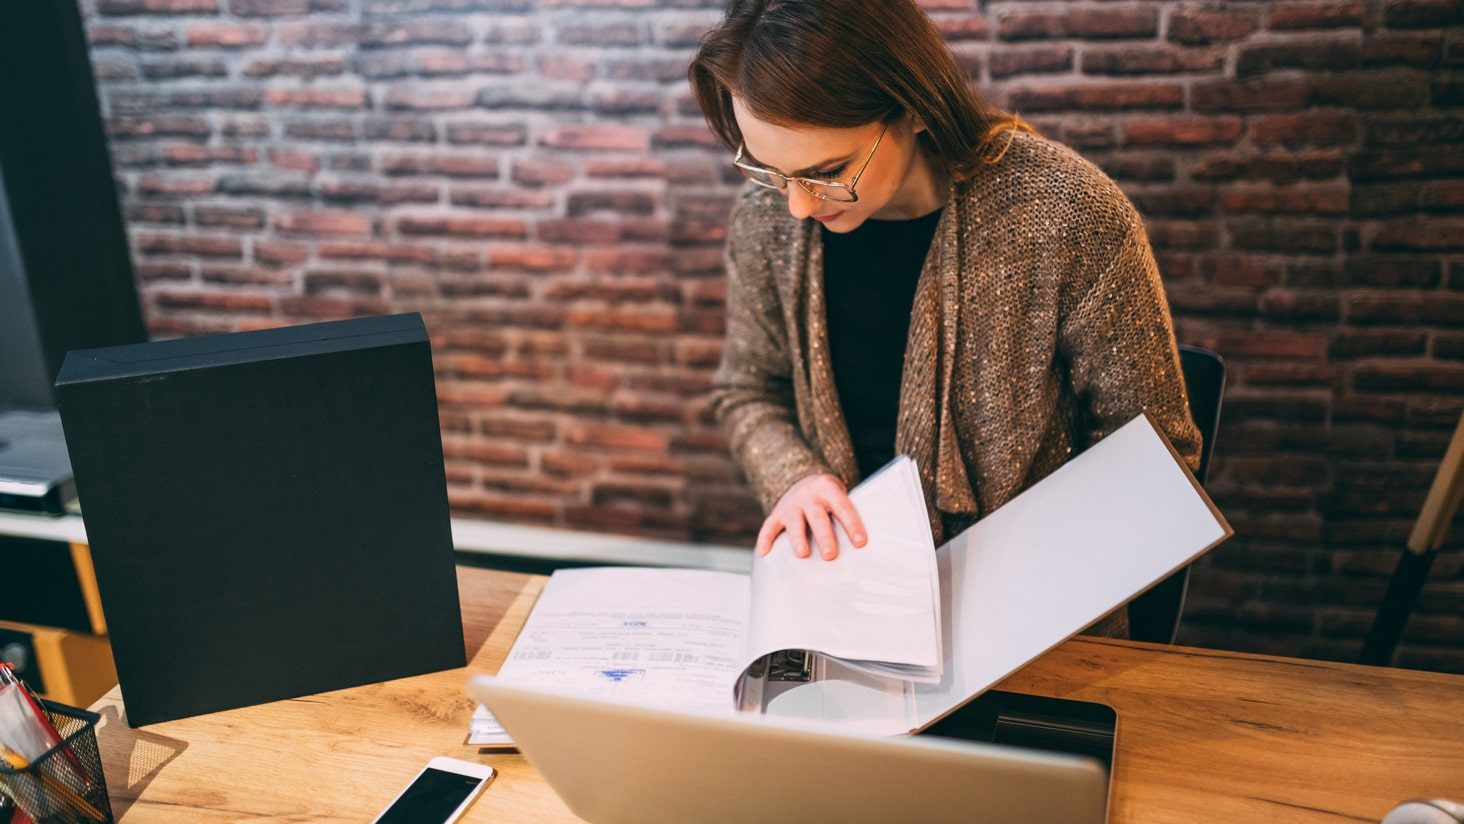 Woman looking through product disclosure statements.